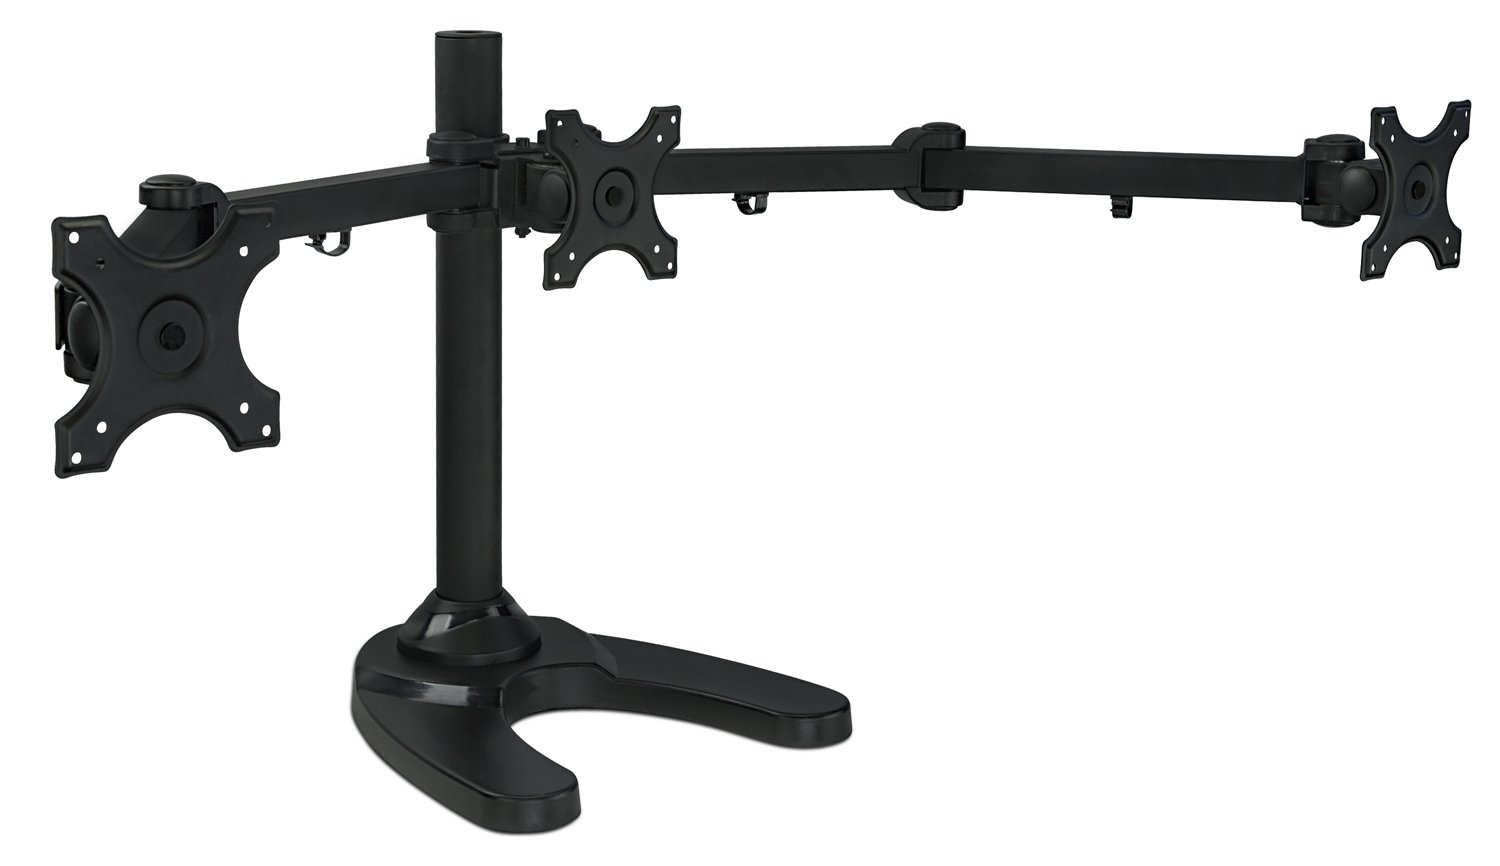 Mount-It! MI-789 Triple Monitor Stand Freestanding LCD Computer Screen Desk Mount for 19, 20, 22, 23, 24 Inch Monitors VESA 75 and 100 Compatible Full Motion, 66 lbs Capacity (3 Horizontal Monitor) by Mount-It!